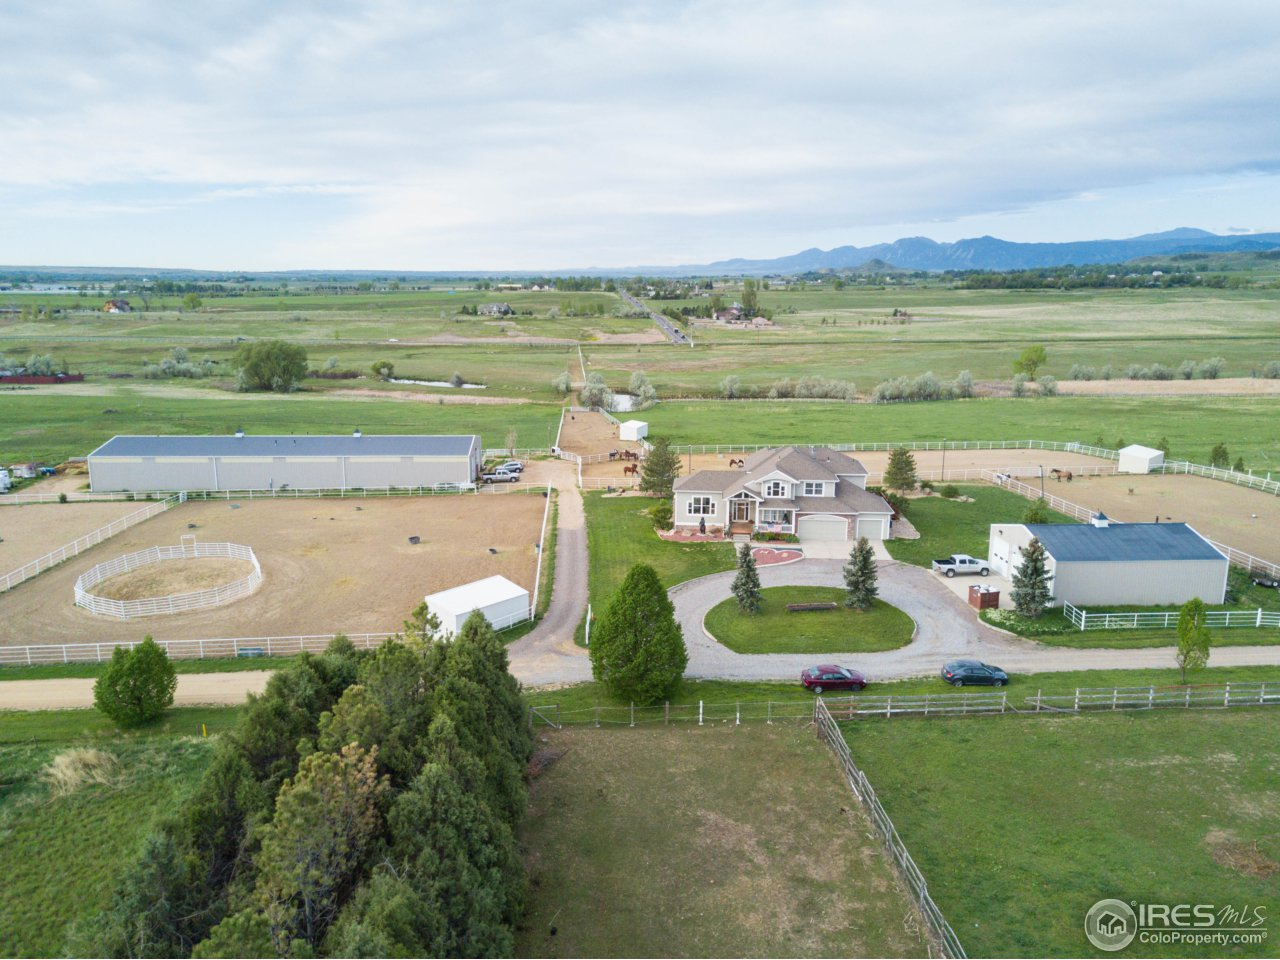 10069 N 65th St, Longmont, CO 80503